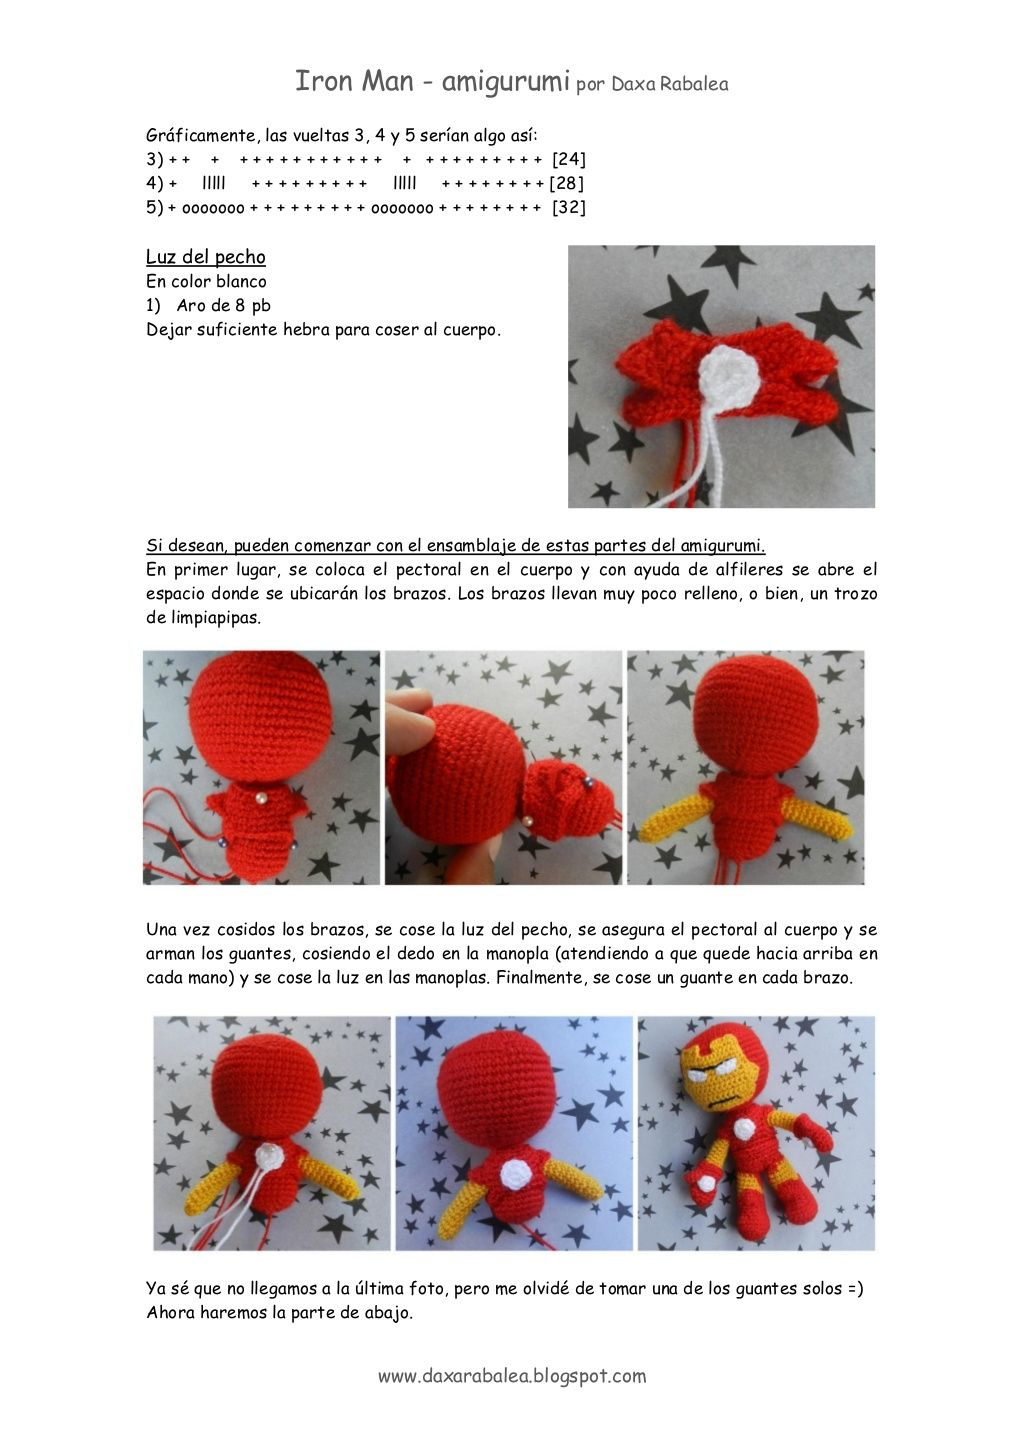 IRON MAN, DE GANCHILLO/CROCHET-PATRON 3/6 | 1 Amigurumi free pattern ...